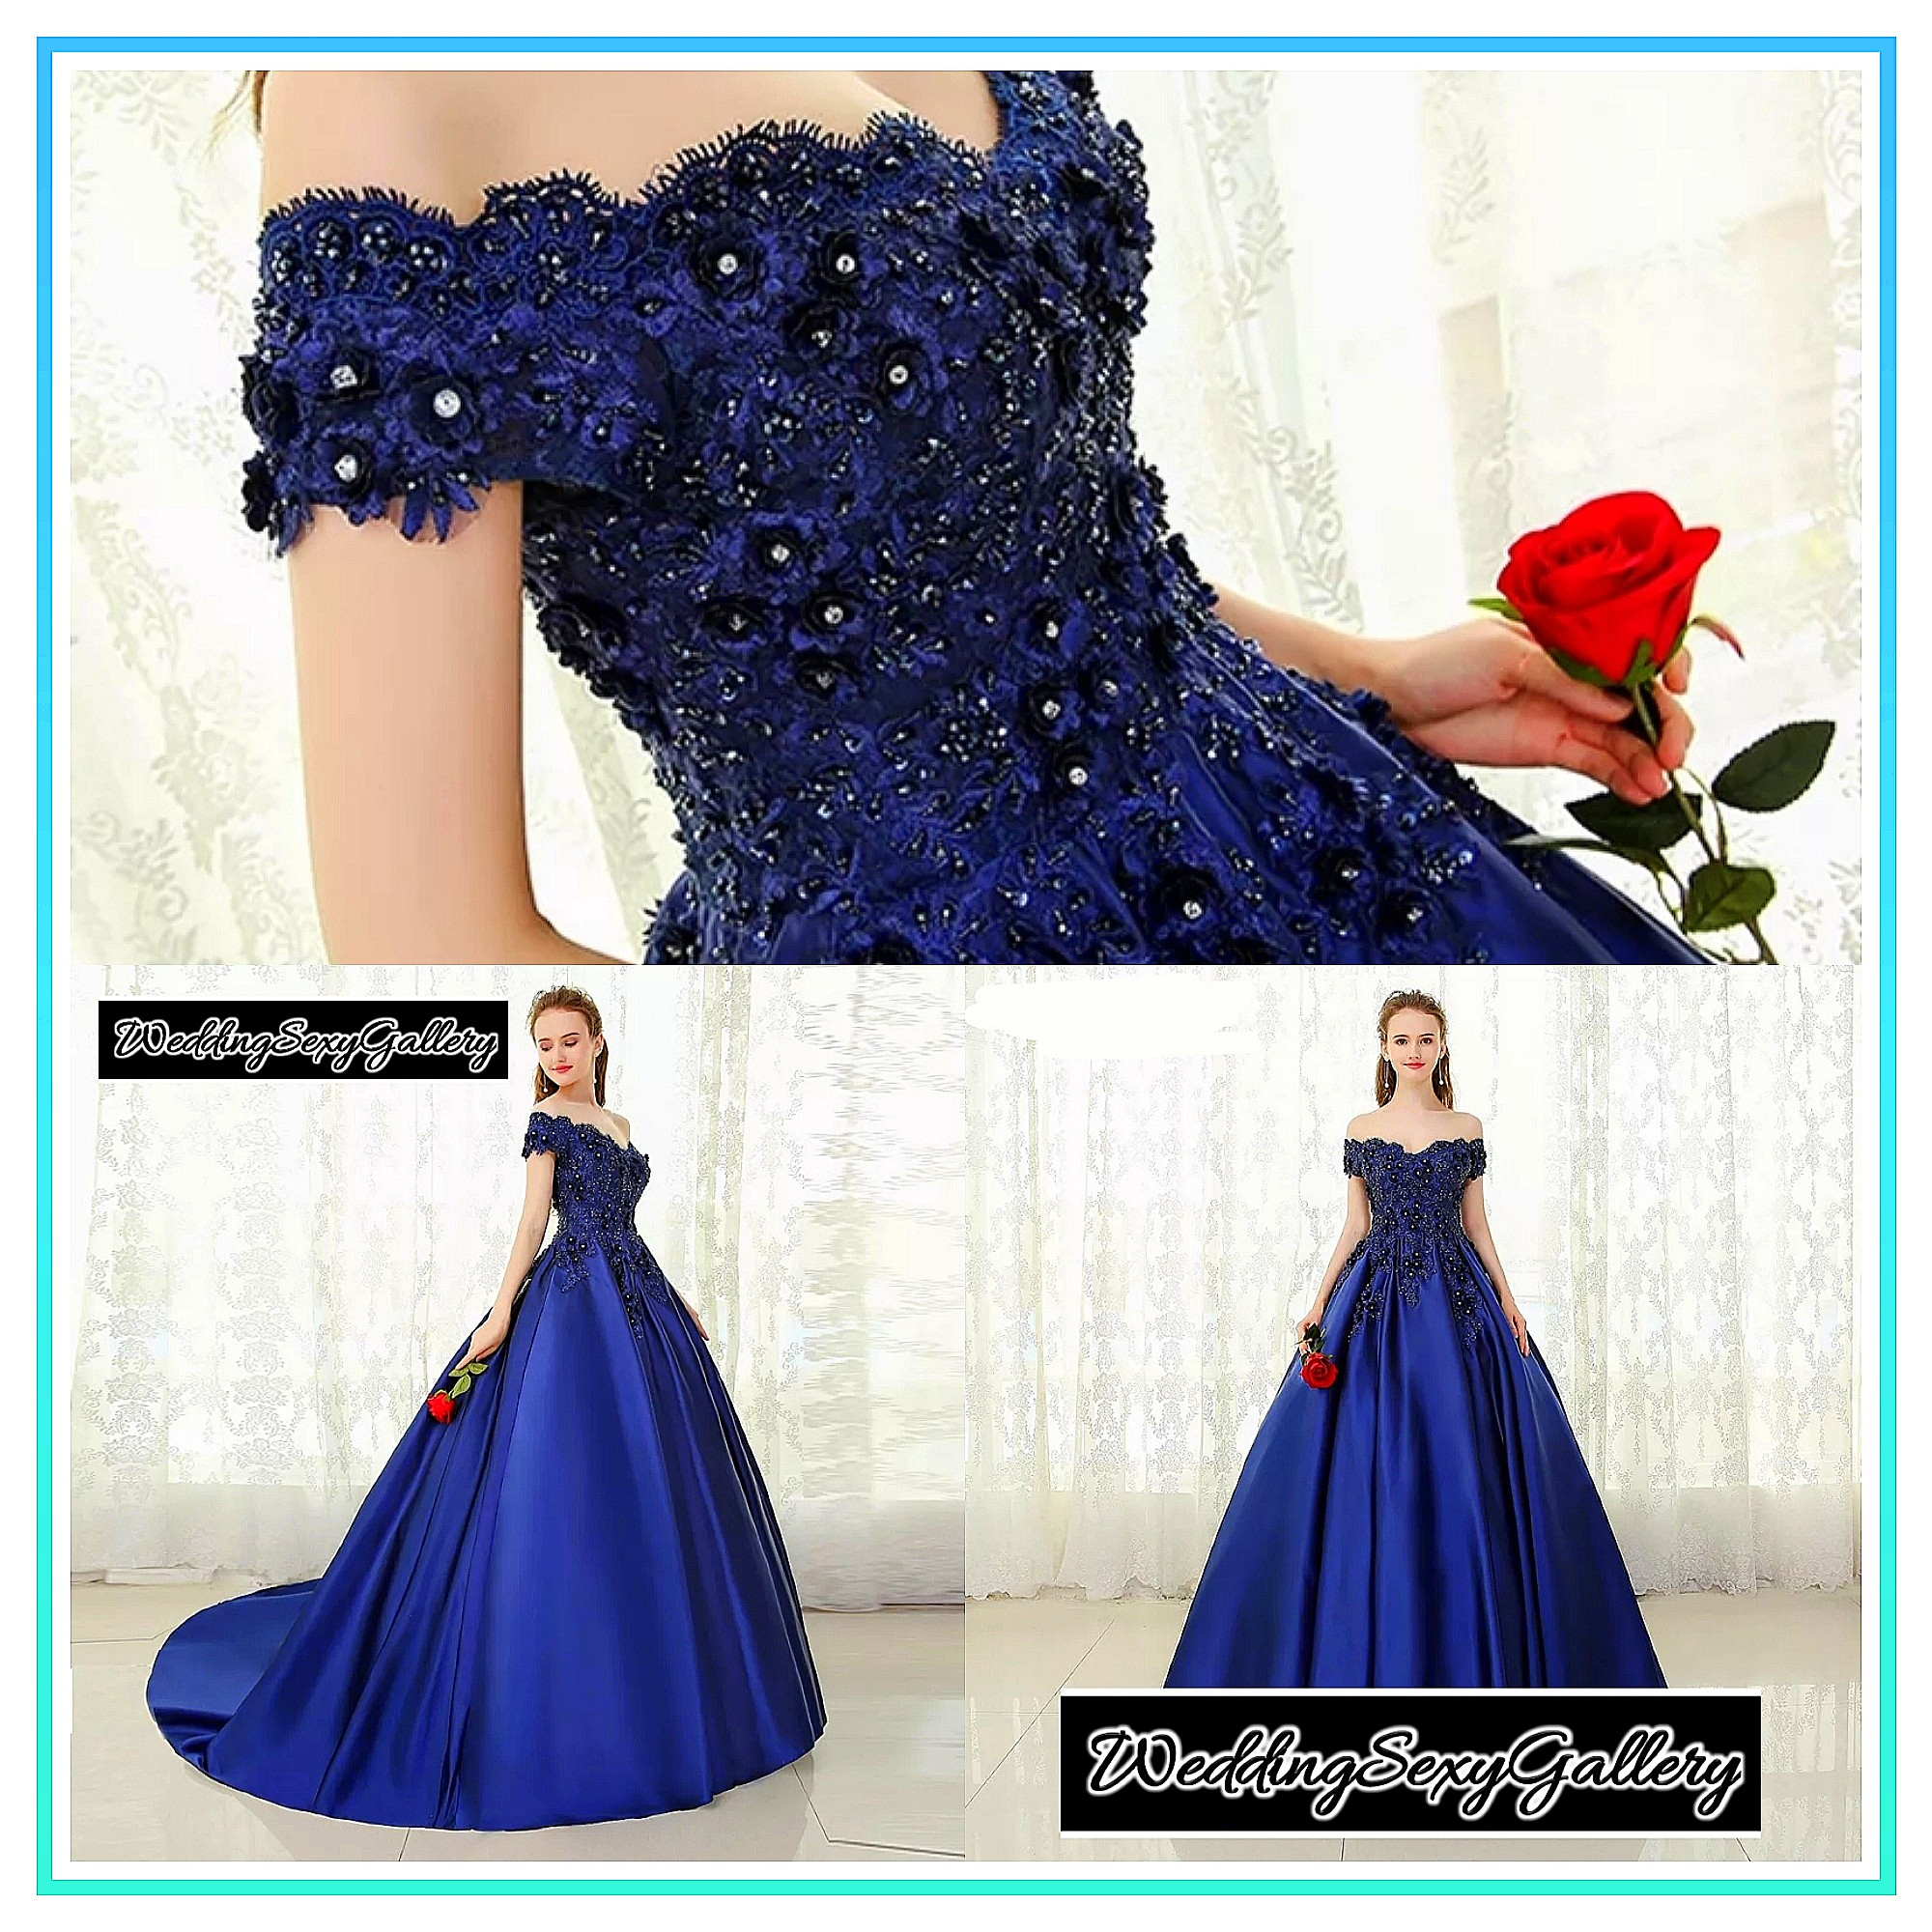 950c5429a2   04 🌹⏺🅿🅾⏺🌹BEPEITHY V-neck Navy Blue Long Evening Dress Lace Beaded  Vintage Prom Gowns Vestido De Festa Off The Shoulder Cheap Evening Gown